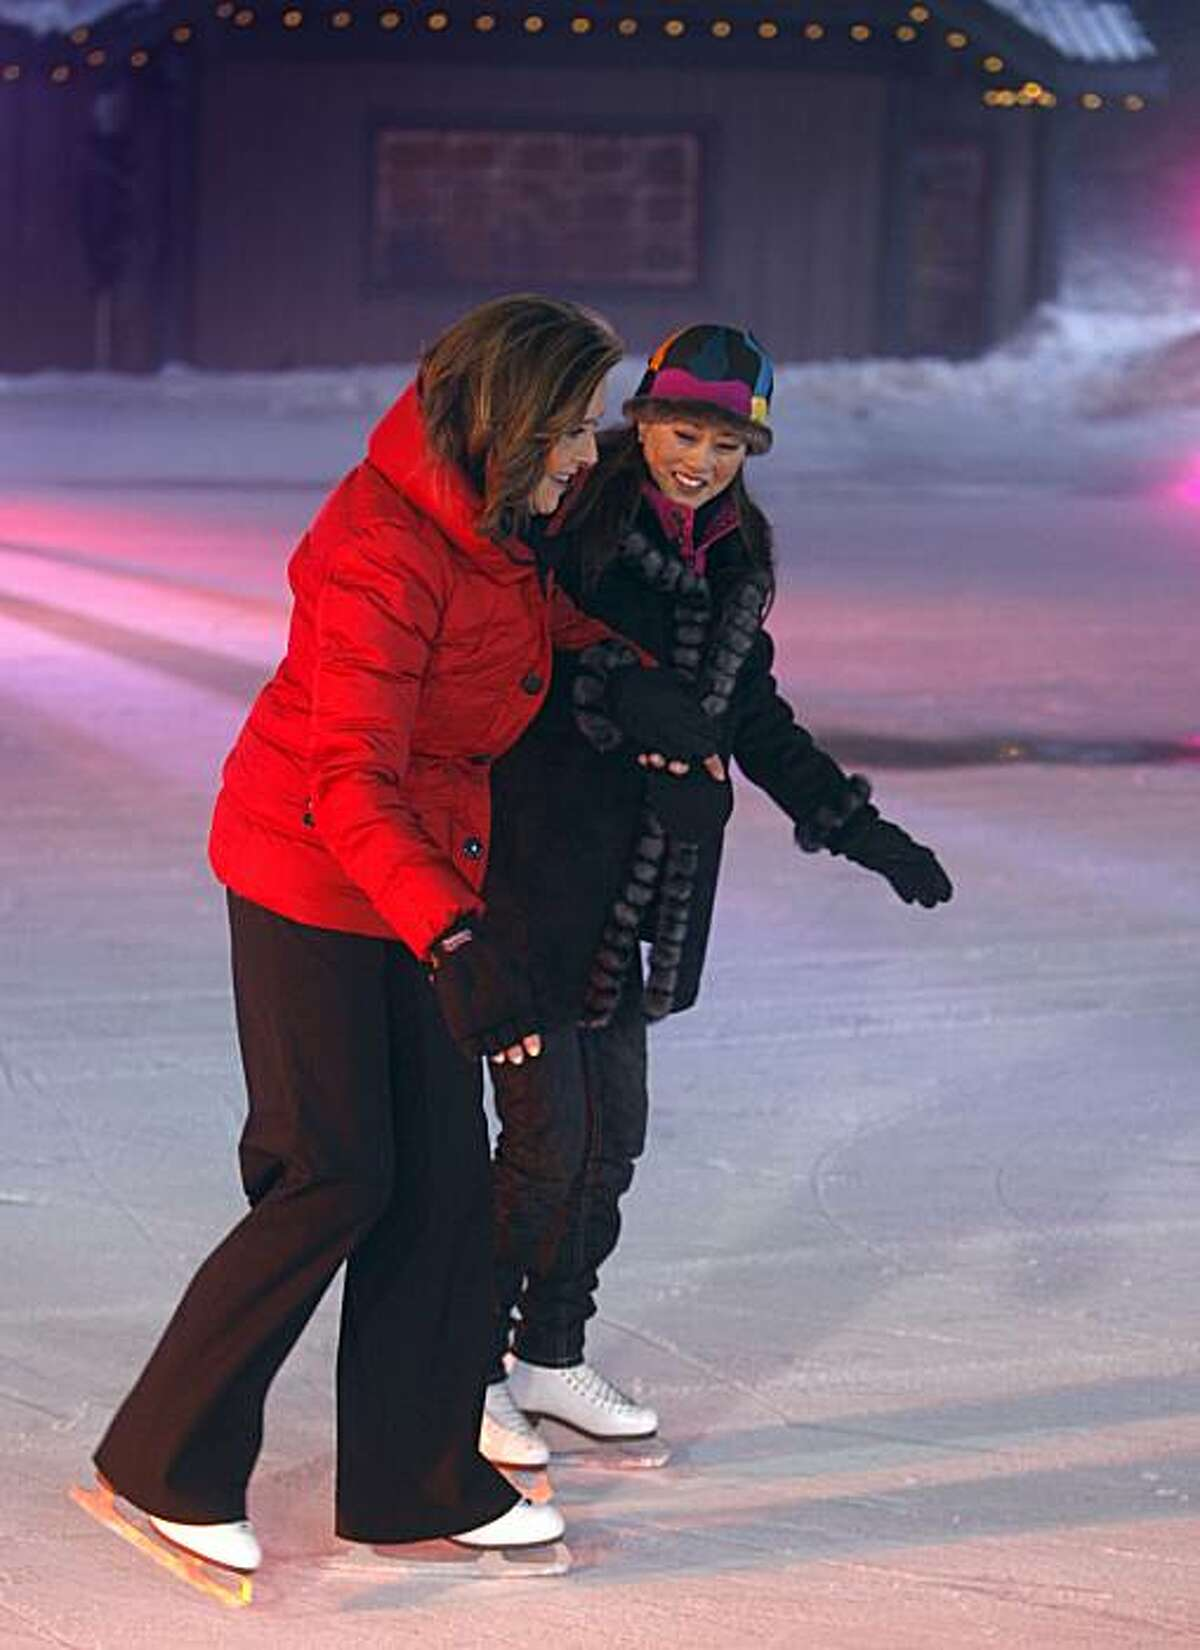 Figure skater Kristi Yamaguchi (right) helps co-host Meredith Vieira skate on the ice during an appearance on the Today show broadcast from Grouse Mountain ski area in North Vancouver, B.C., on Friday, Feb. 12, 2010. Yamaguchi won a gold medal at the 1992 Winter Olympic Games at Albertville, France.